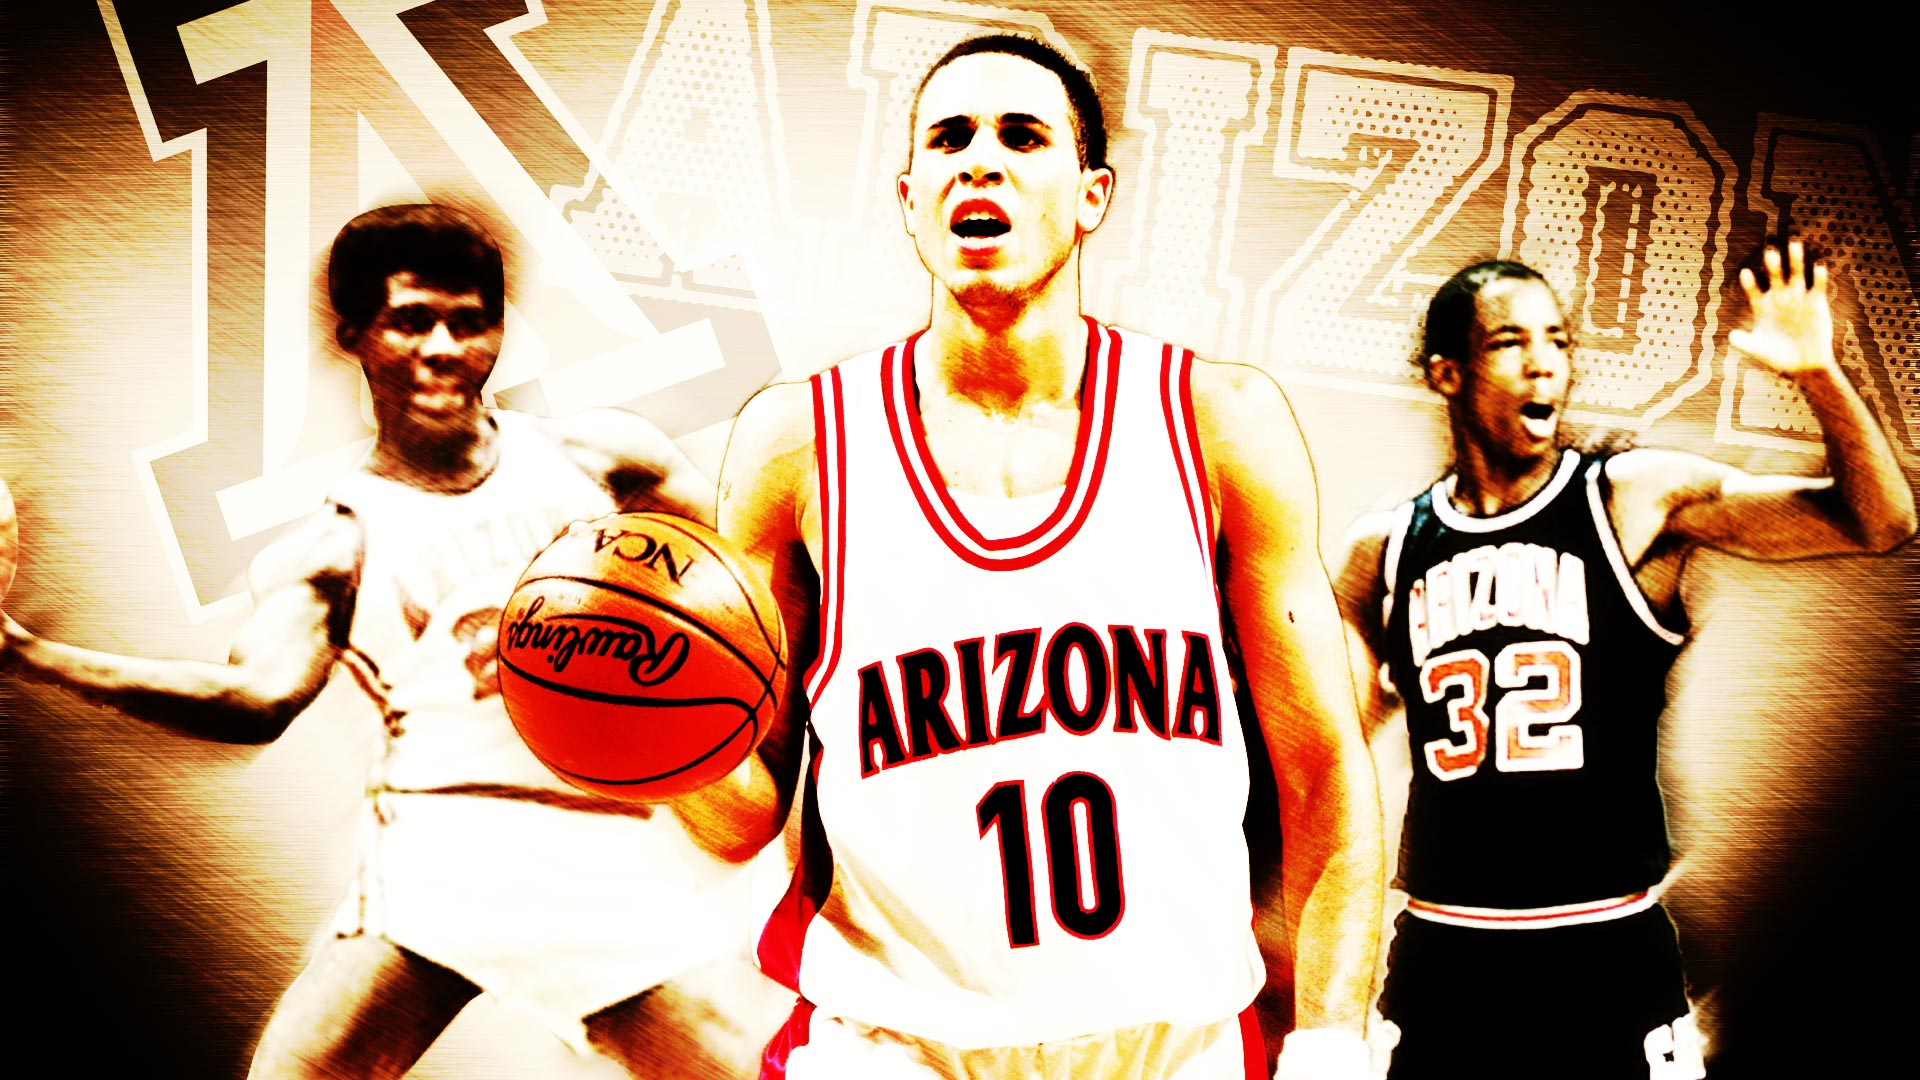 Kentucky Basketball Ranking The Top Five Wildcats Players: 10 Greatest Arizona Basketball Players Of All Time